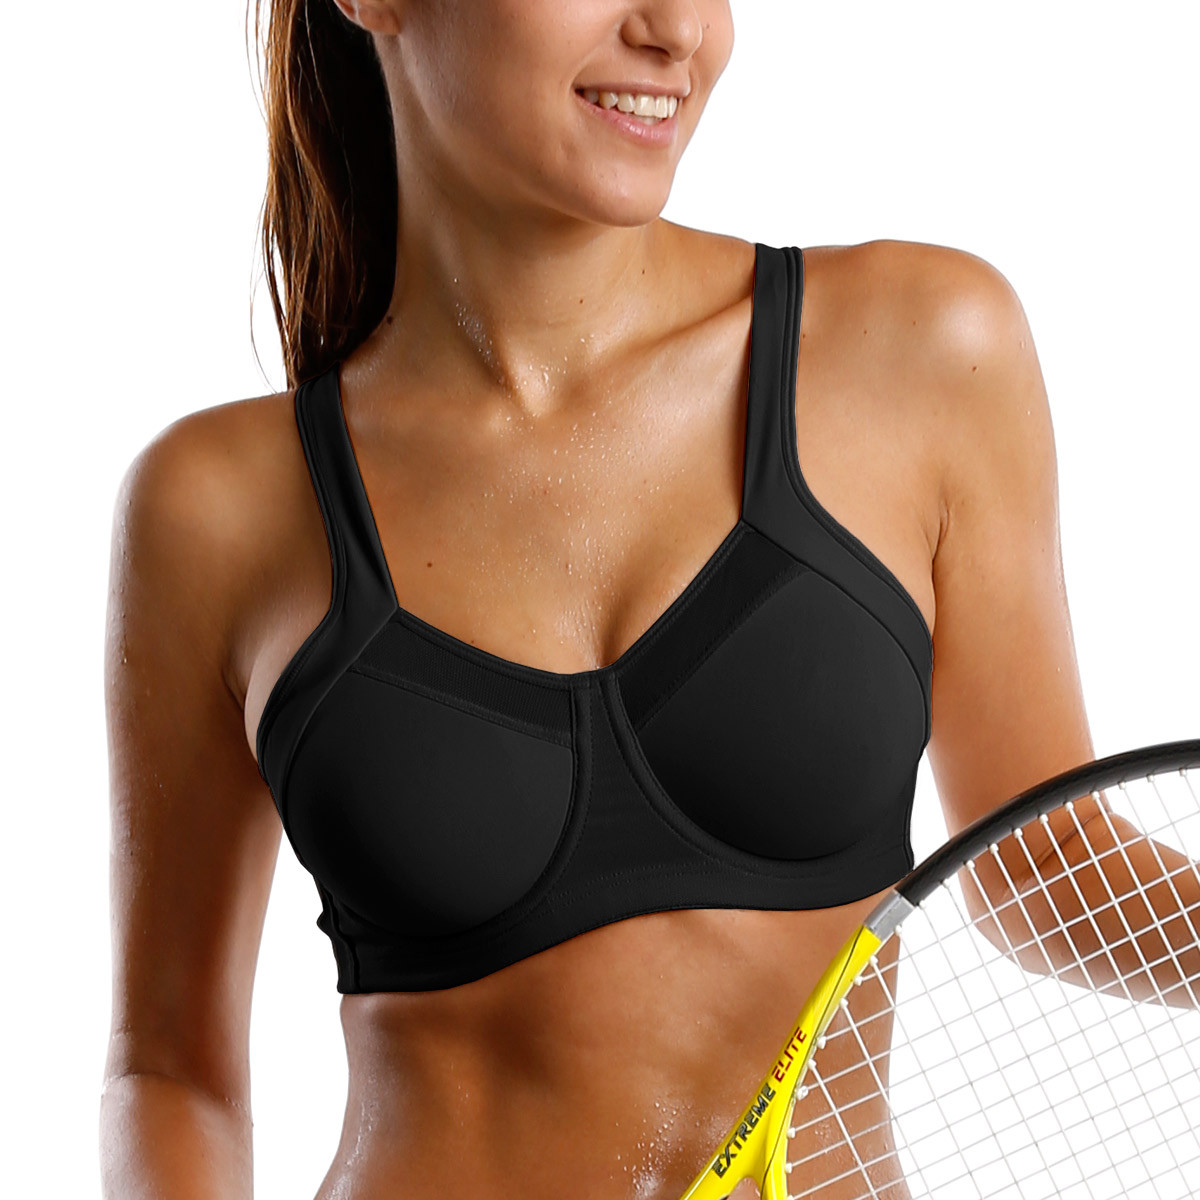 Aliexpress.com : Buy Maximum Support Racerback Level 4 Underwire ...